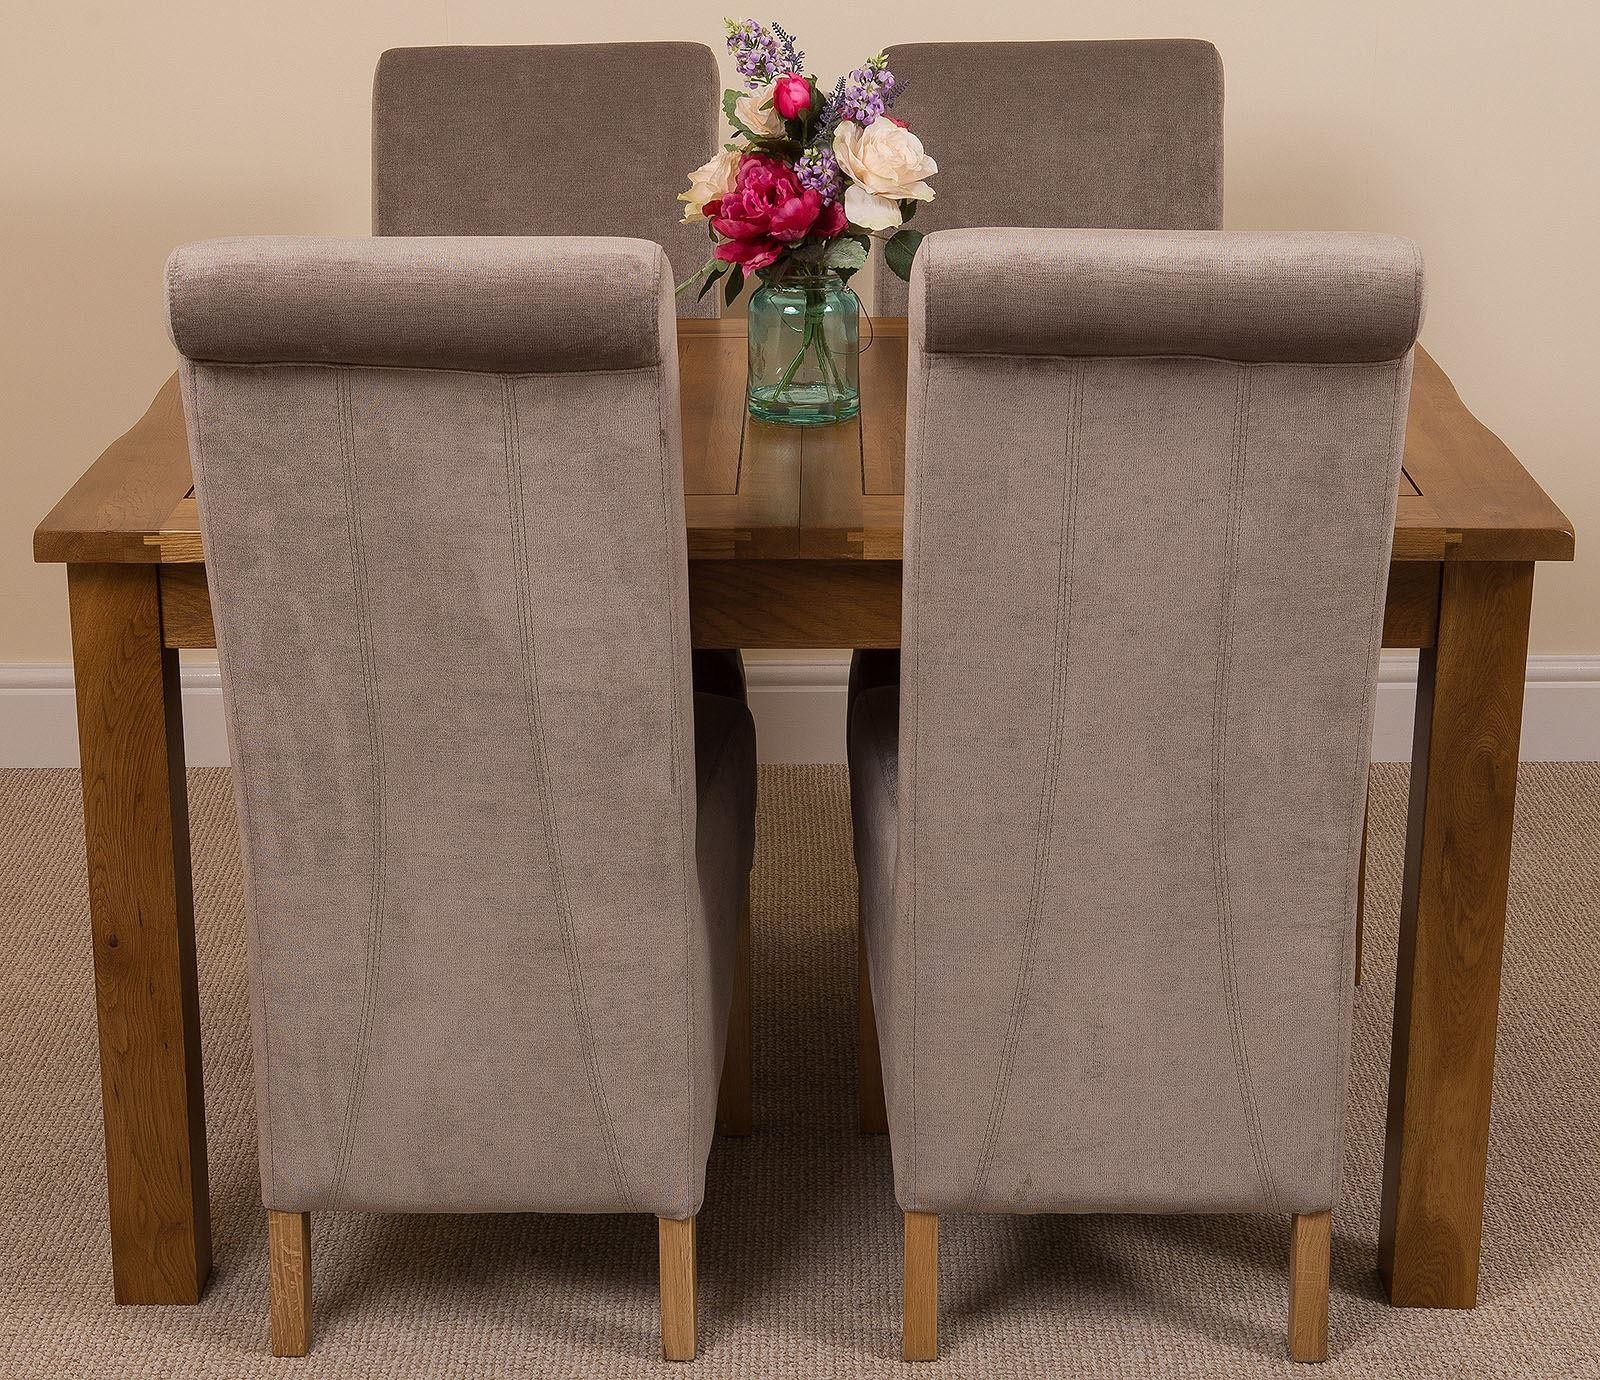 Cotswold Rustic Solid Oak 132cm-198cm Extending Farmhouse Dining Table with 4 Montana Dining Chairs [Grey Fabric]